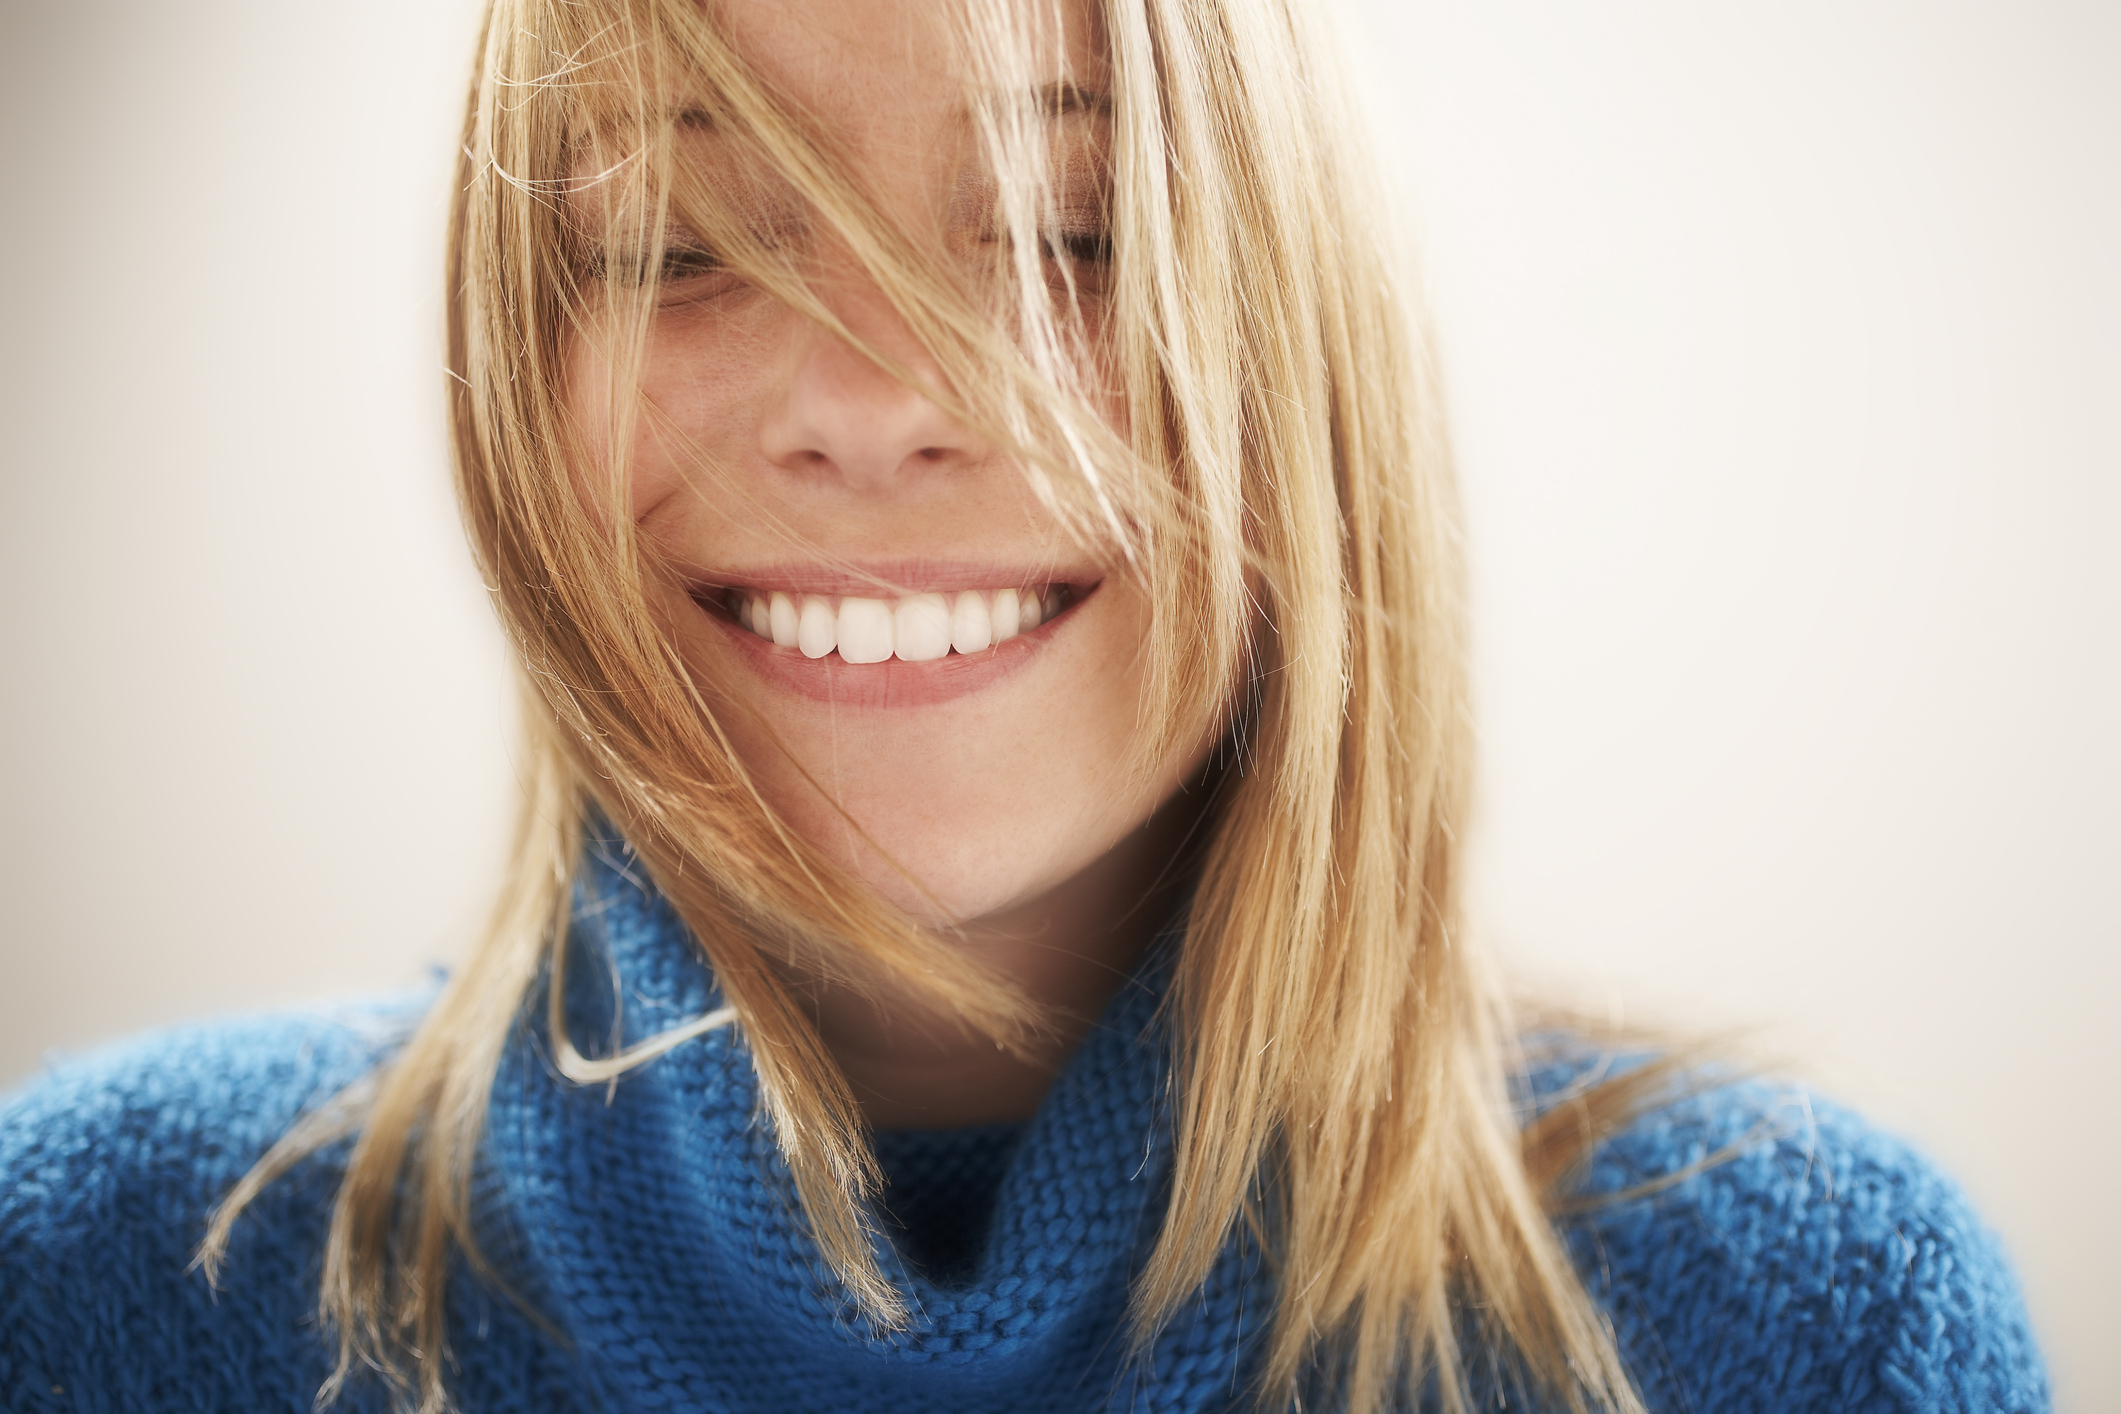 Generic photo of young woman smiling